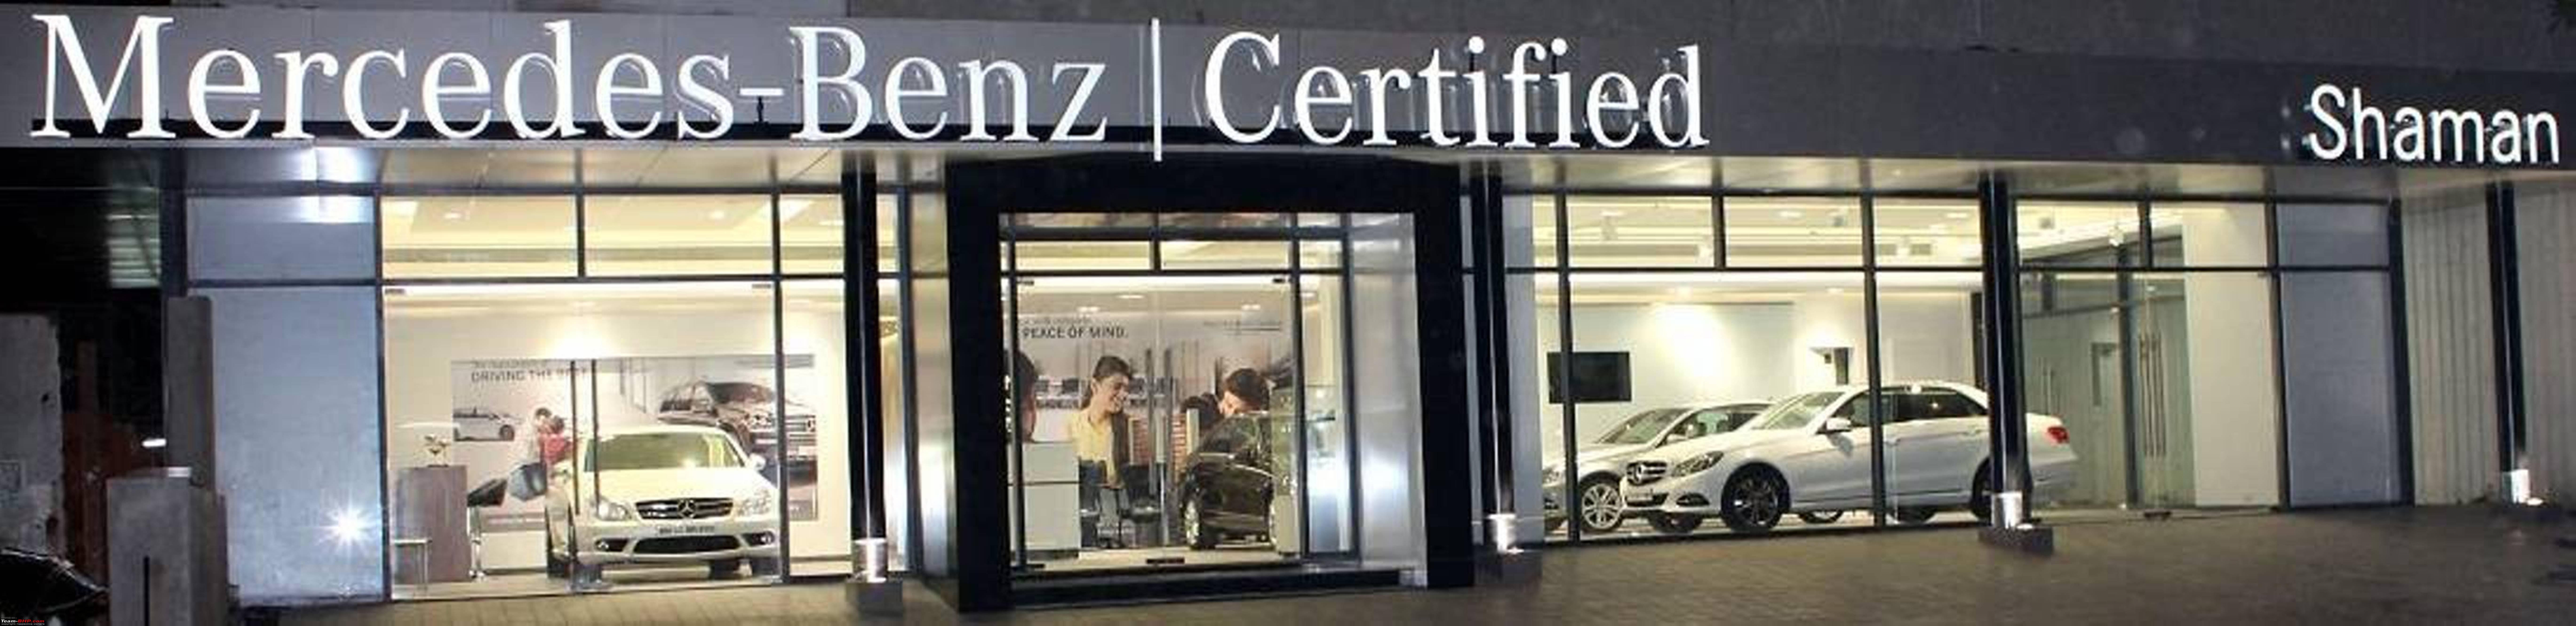 Mercedes-Benz Certified: Pre-owned car brand from Mercedes ...